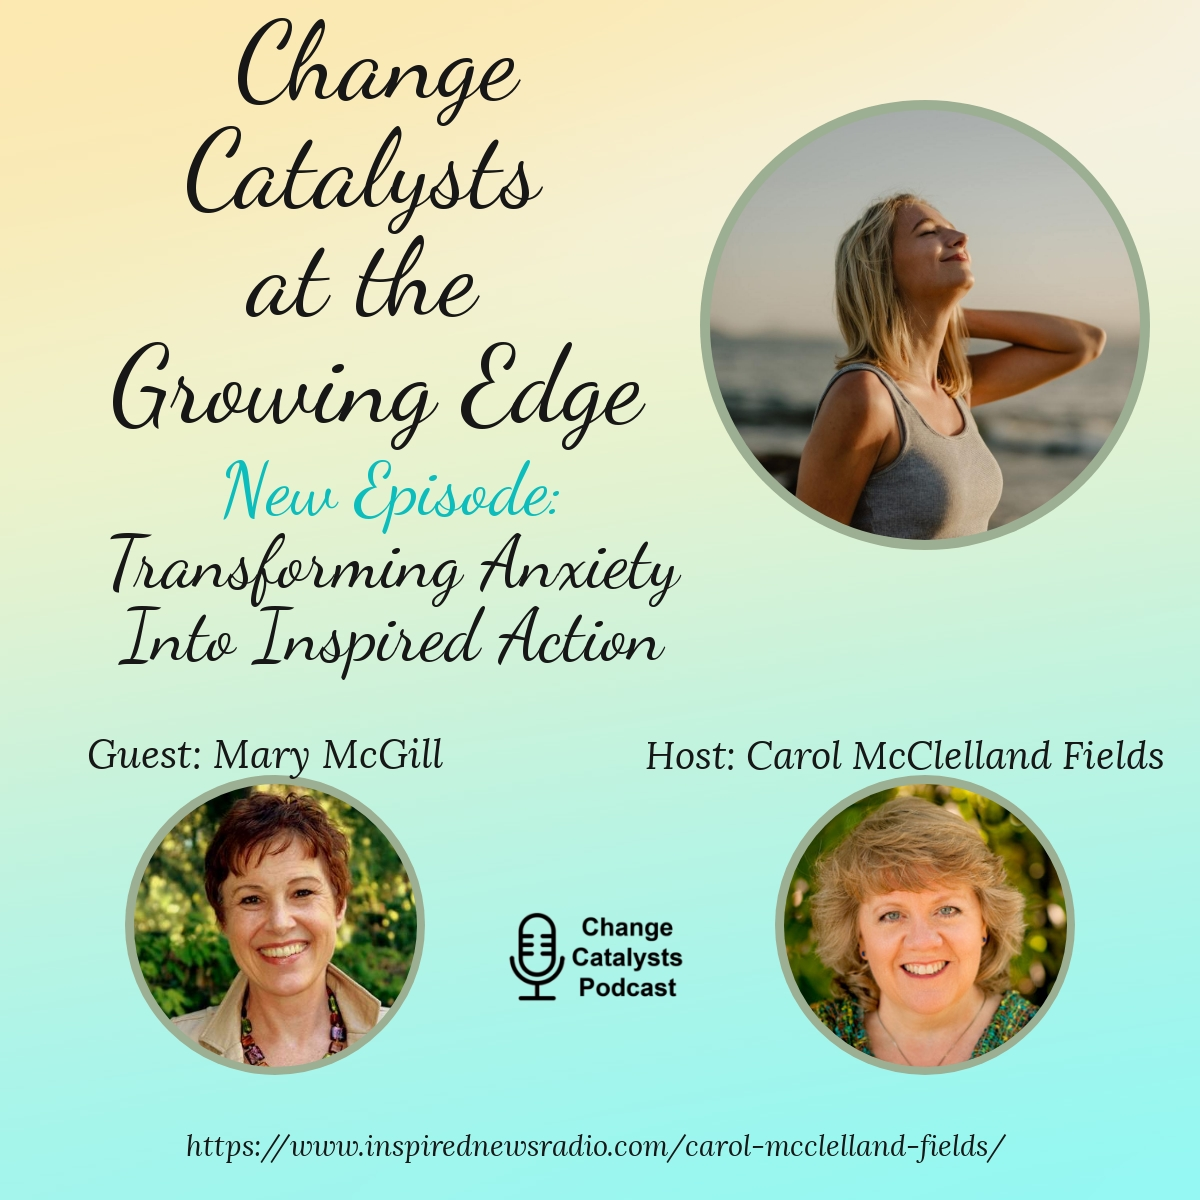 Episode---12-Mary-McGill-1200x1200-layout178-change-catalyst-podcast-mary-mcgill-transforming-anxiety-into-inspired-action-change-catalysts-at-the-growing-edge-1eb0fk0.jpg